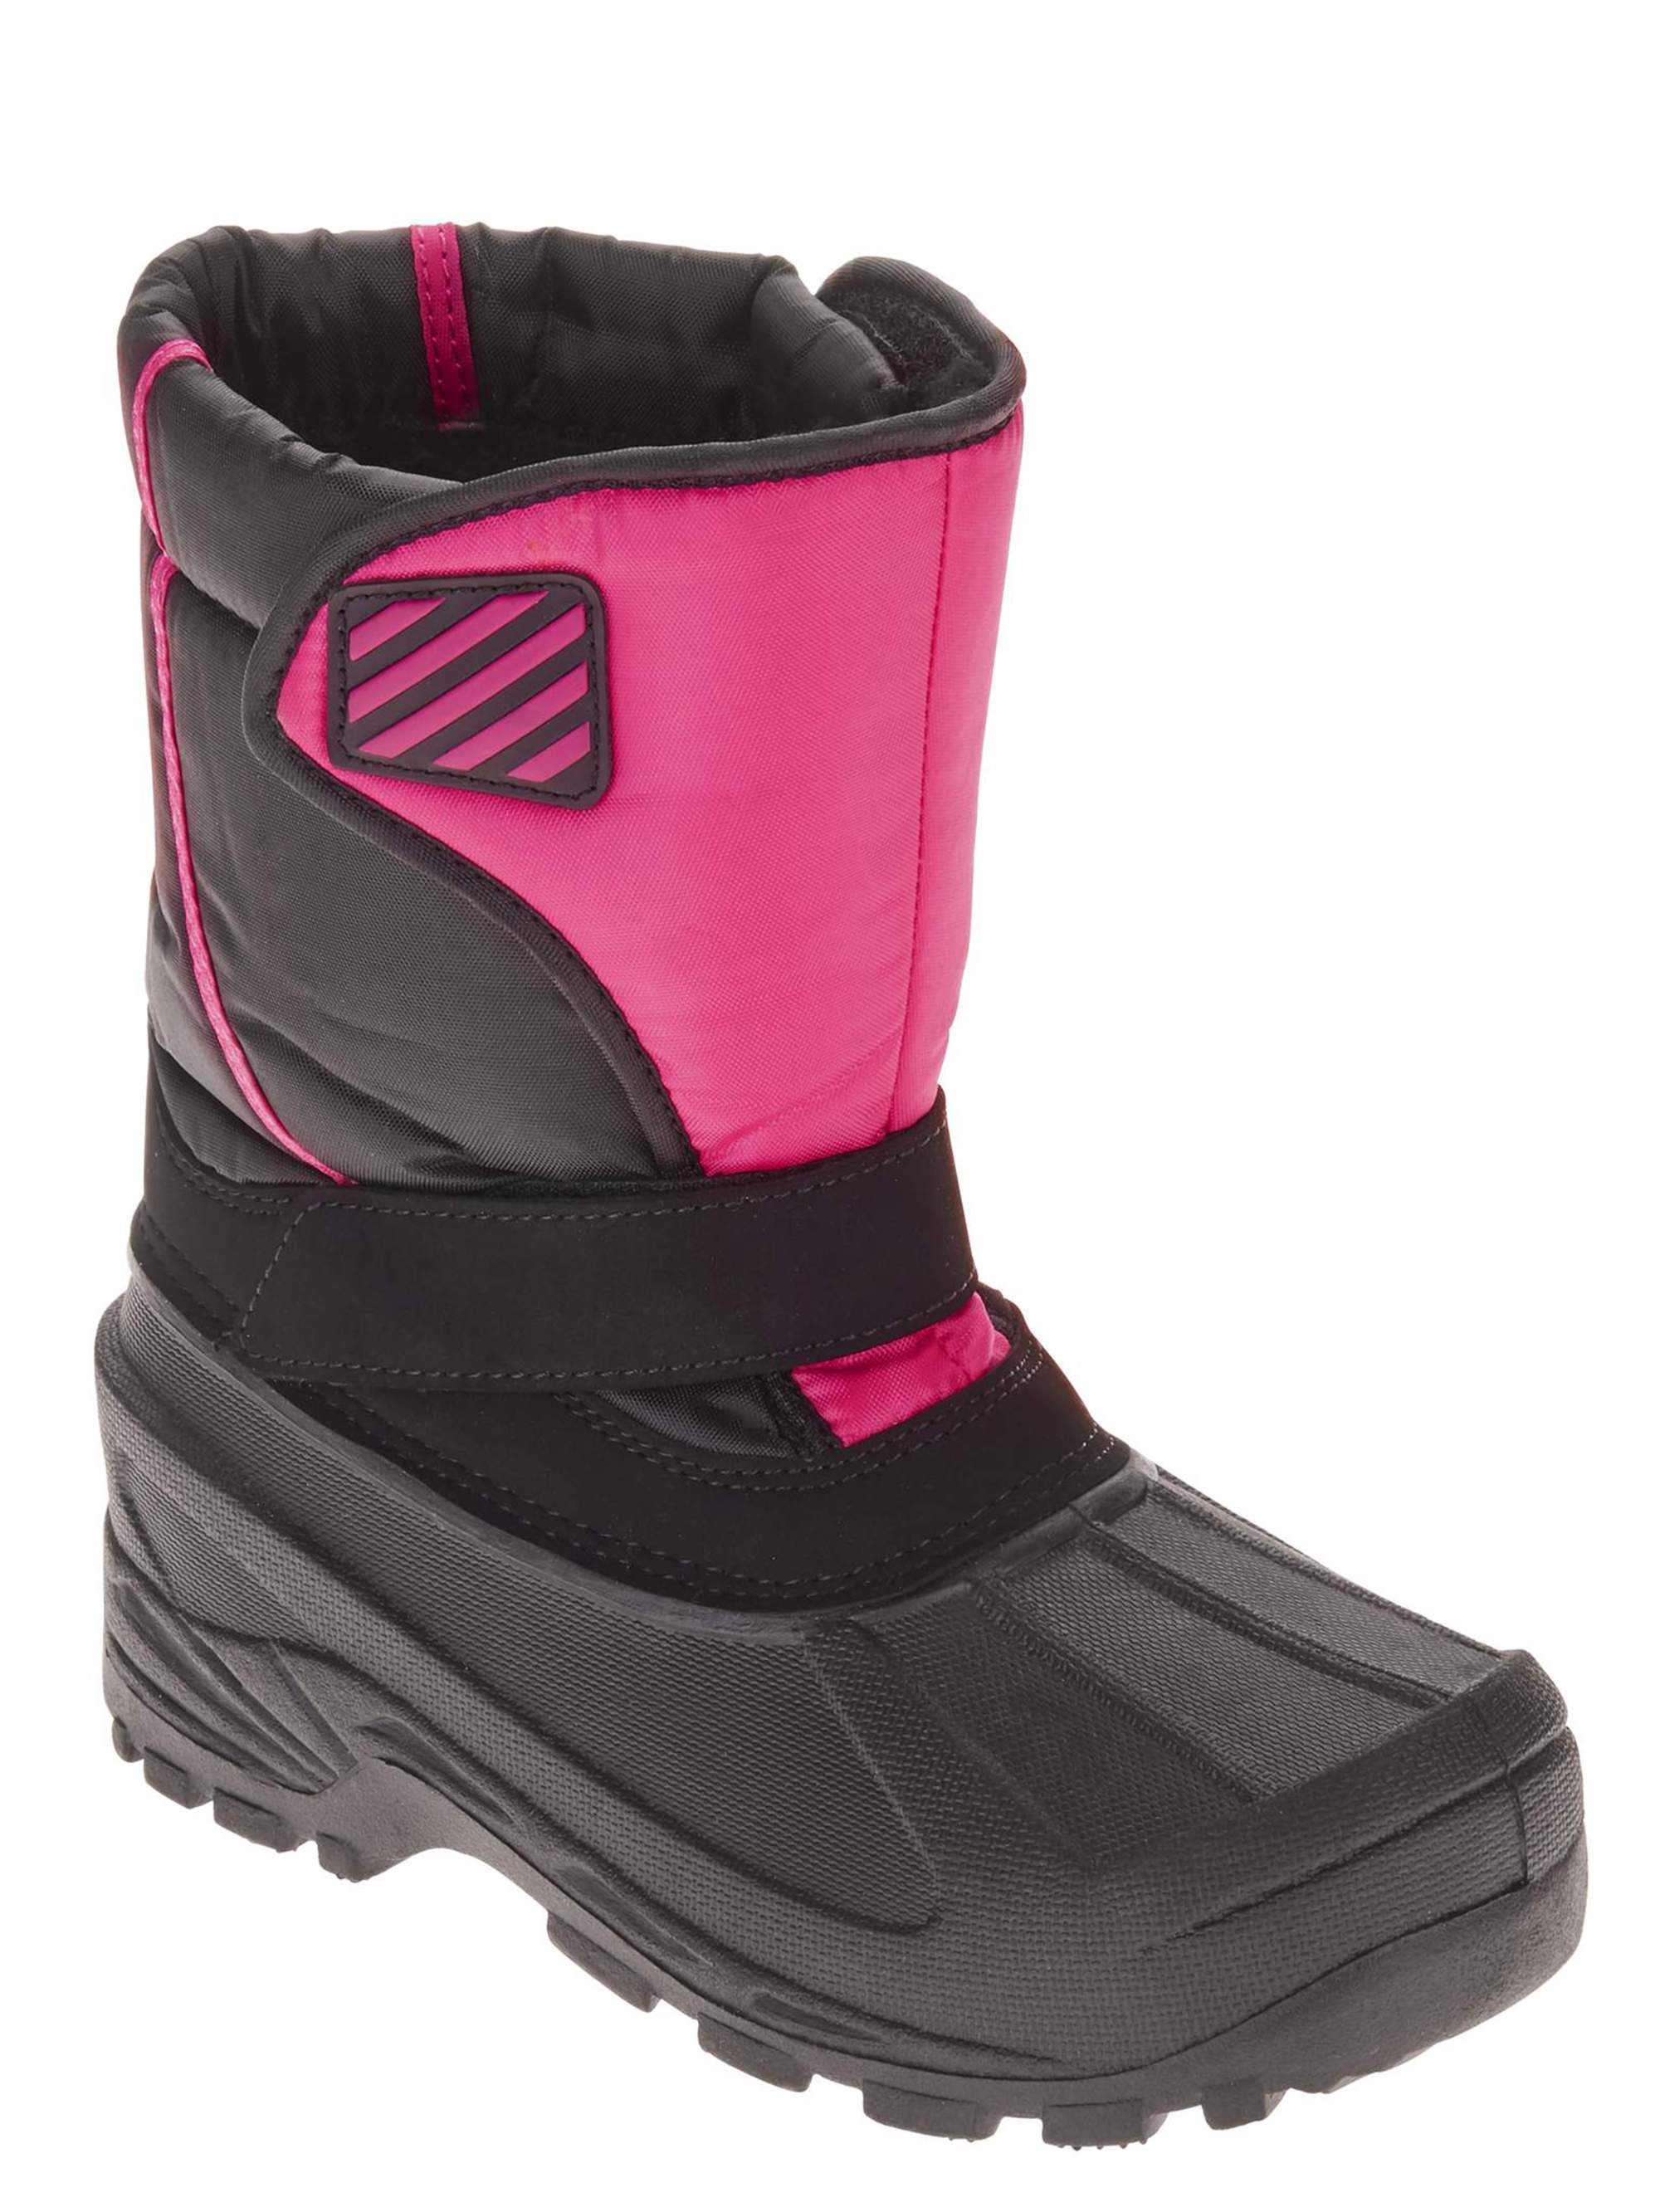 Girls' Essential Winter Boot